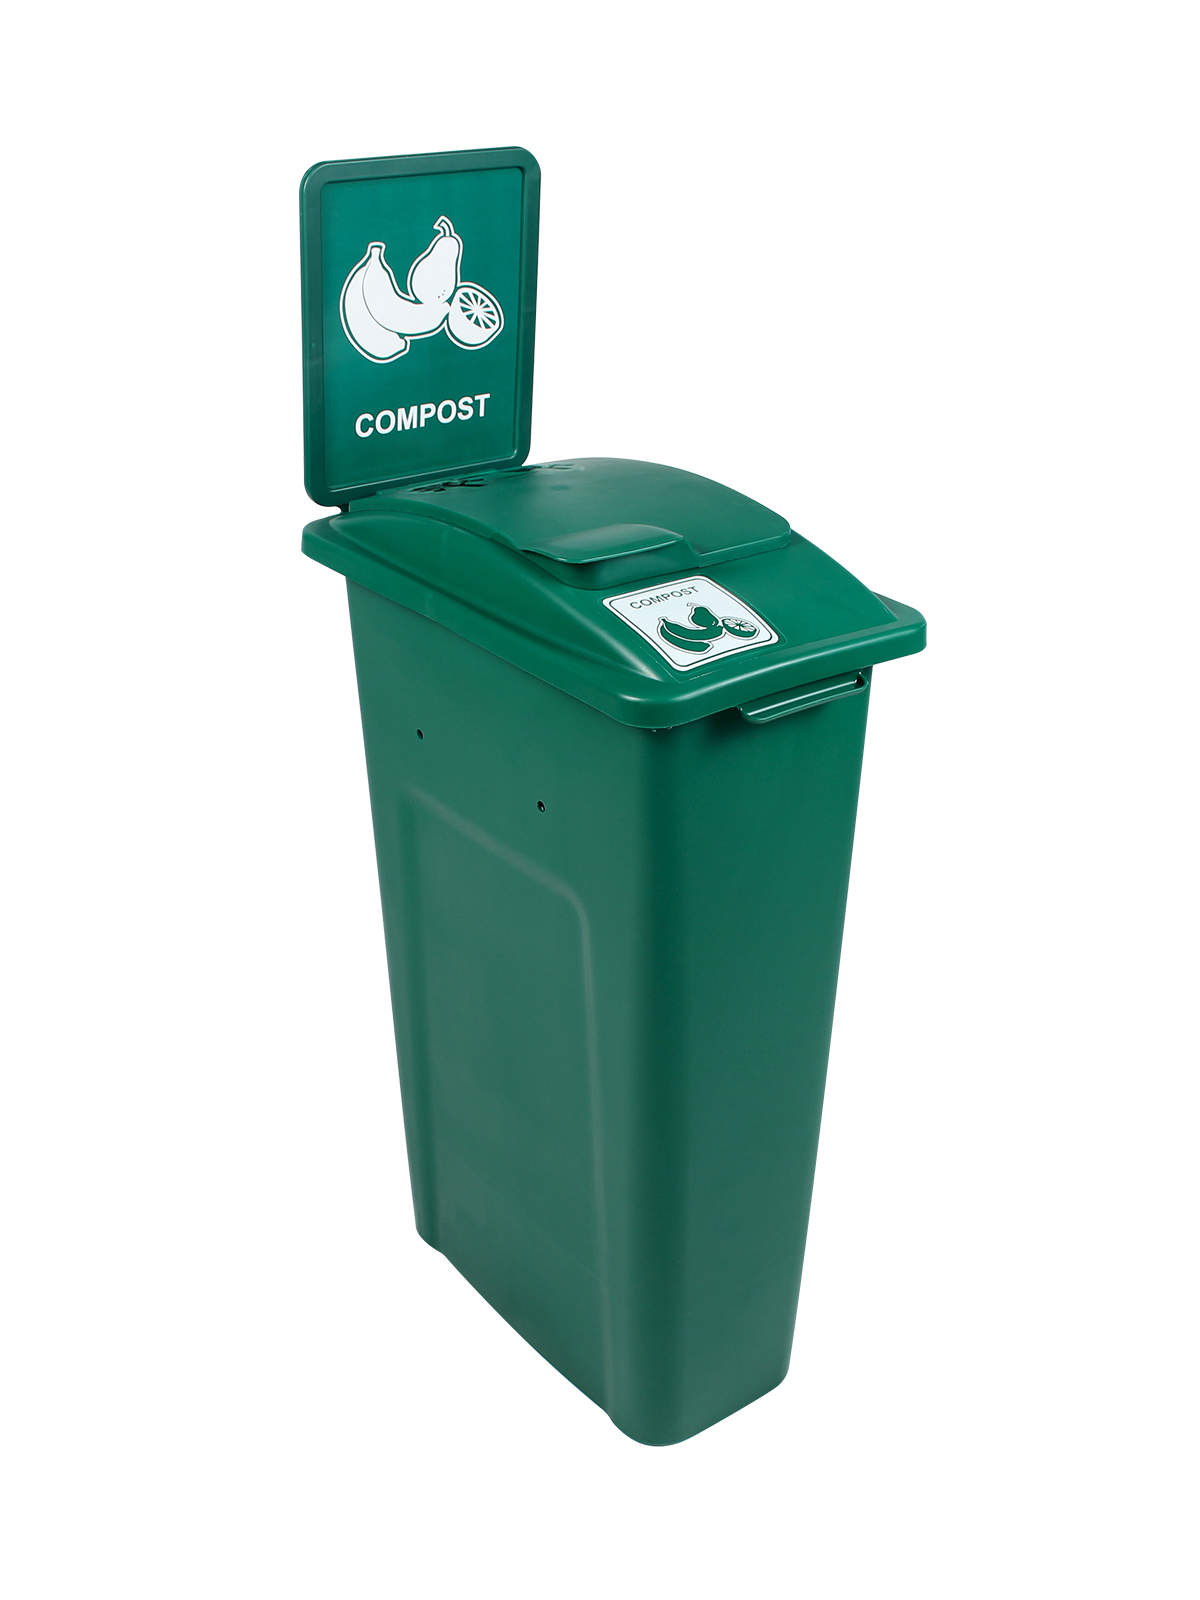 WASTE WATCHER - Single - Compost - Vented Lift - Dark Green